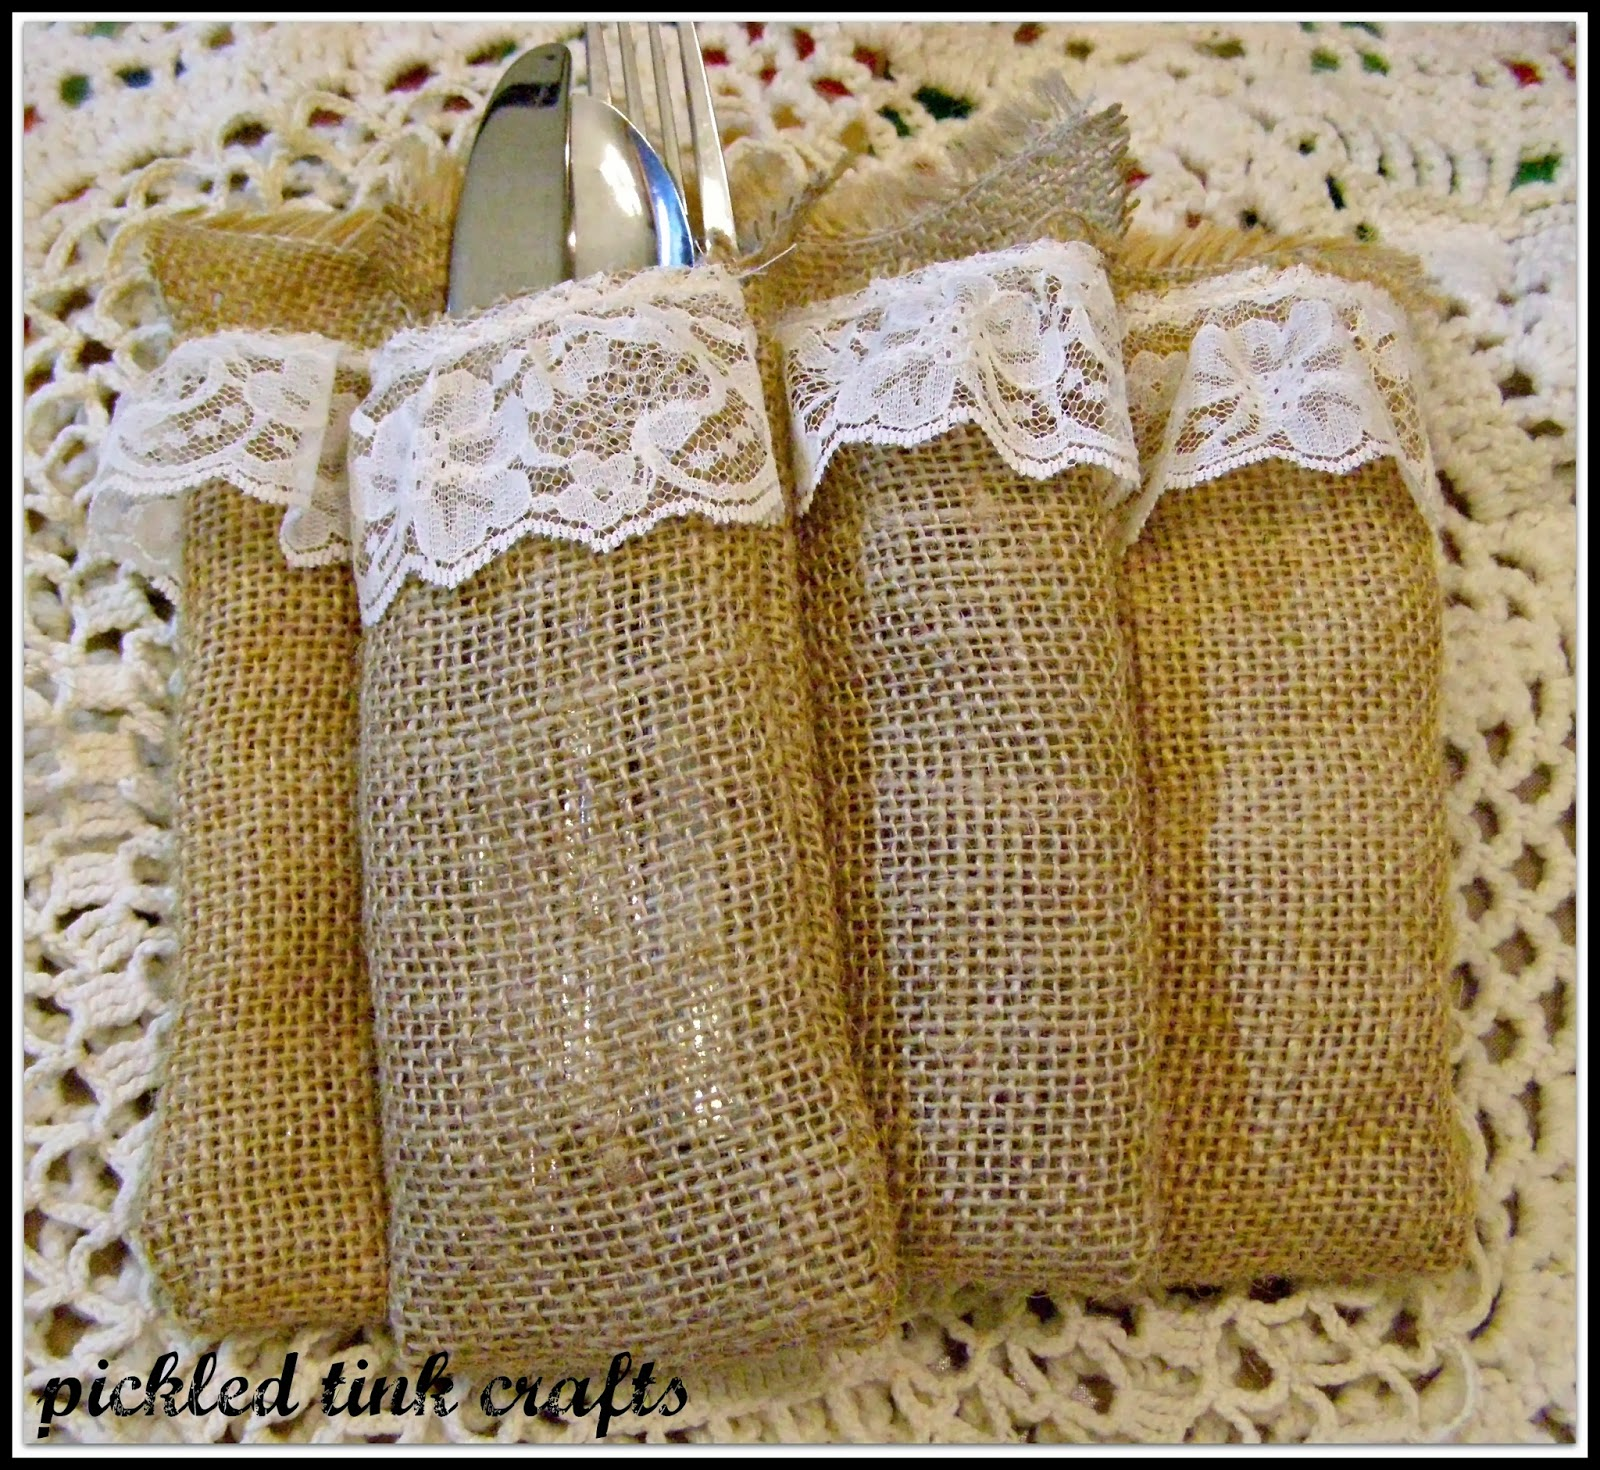 Pickled tink crafts more burlap projects love for Burlap crafts